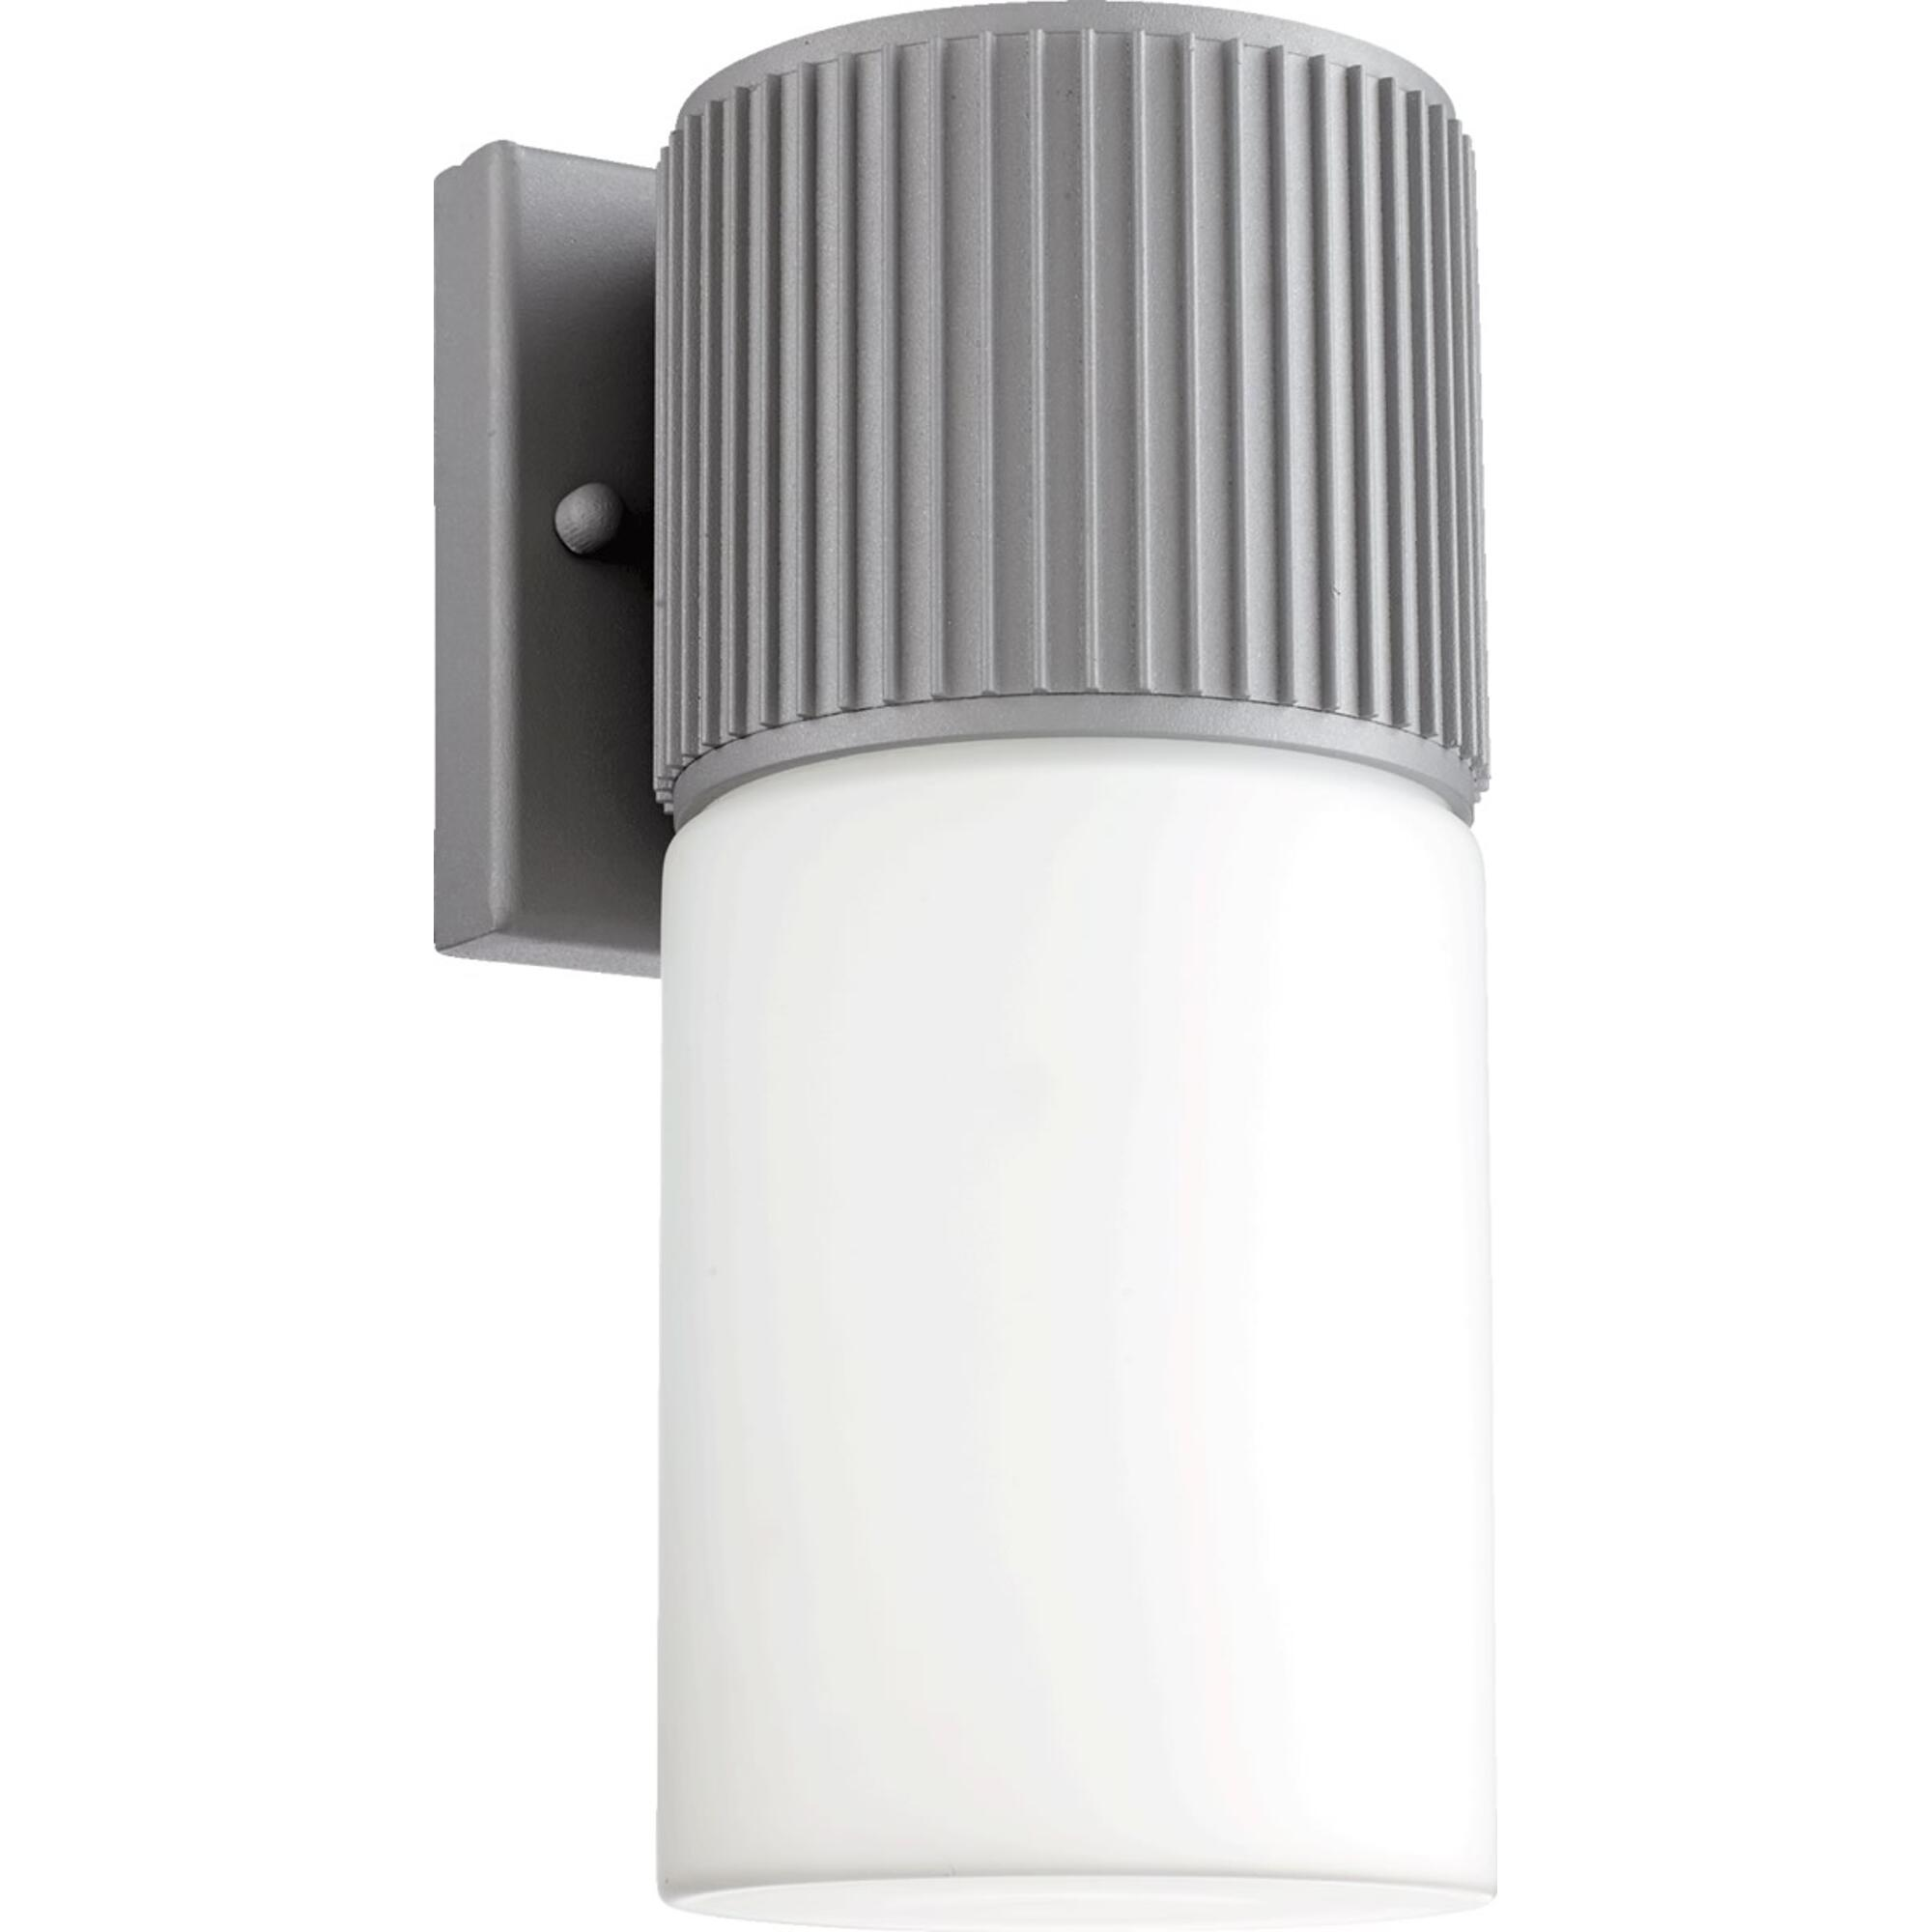 Manhattan 1-Light Wall Sconce Grey by Quorum. Modern Design Perfect for front door, garage door or back door